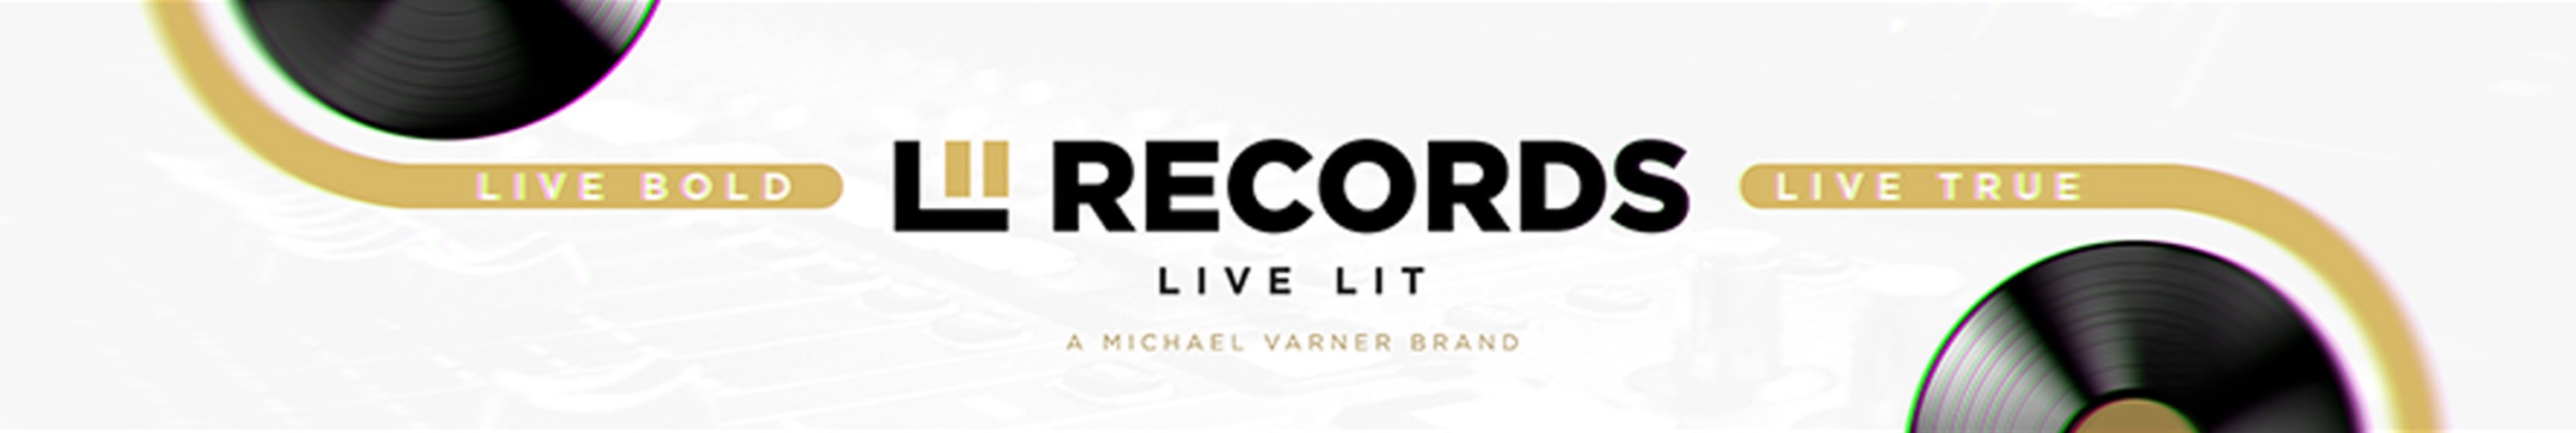 L2 Records cover feature